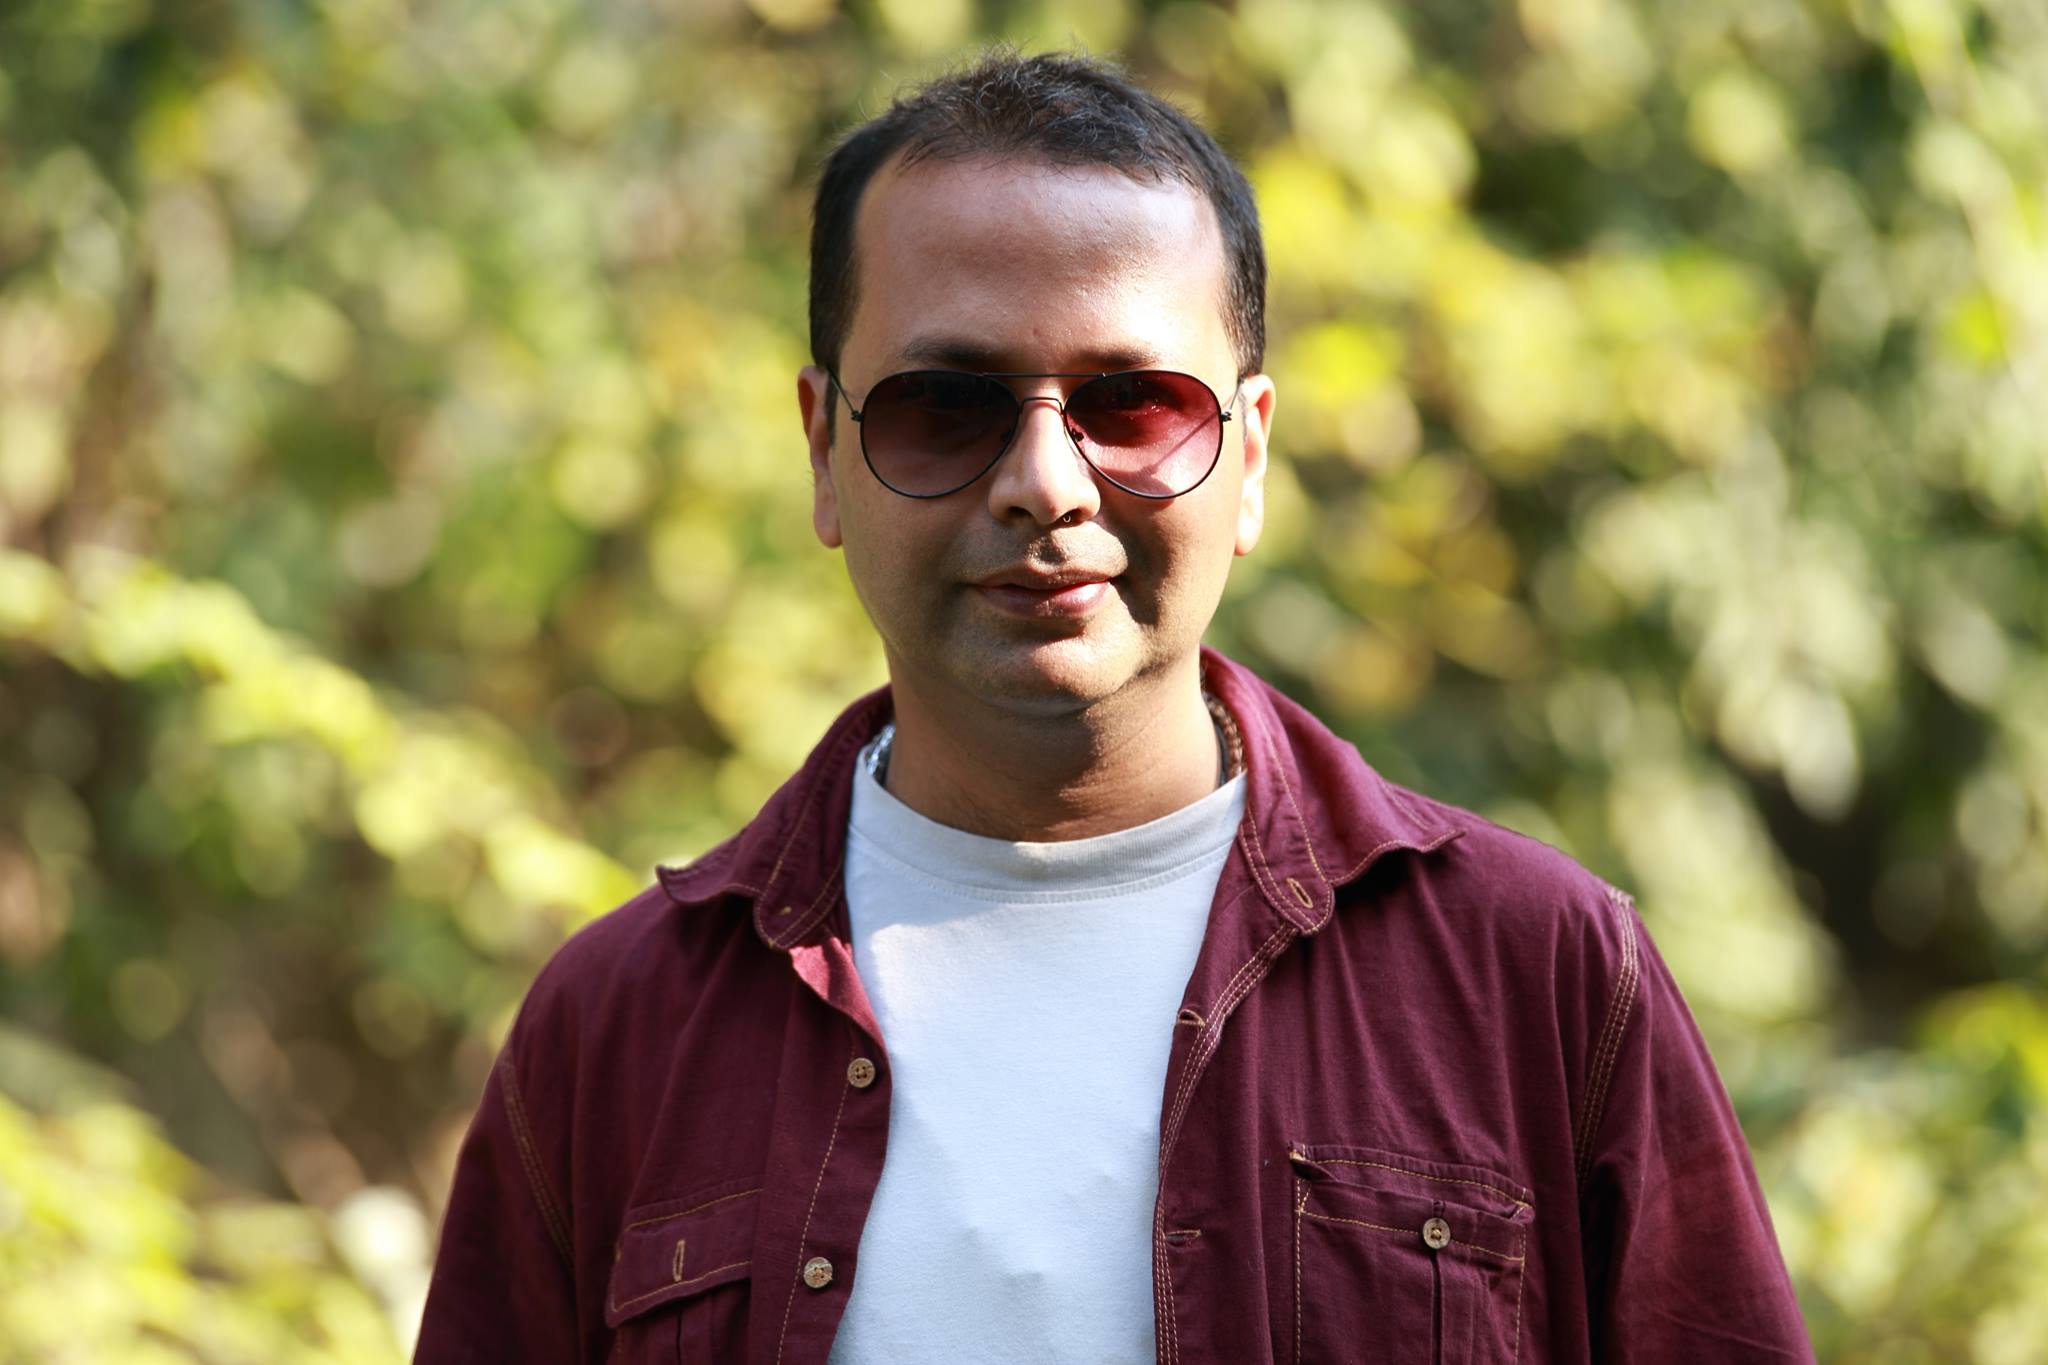 Prasantt Ghosh was born on 21 September 1975 and grew up in Guwahati, Assam. He studied fashion designing from the National Institute of Fashion Technology (NIFT). Ghosh started his career by opening a fashion designing institute in Assam called Assam Art and Designing Institute (AADI) and launched his fashion label named Prasantt Ghosh in 1996. By the year 1999, Prasantt started doing fashion week and many other government fashion events. In 2011, he won the 'Best Fashion Choreographer Award in Northeast'.